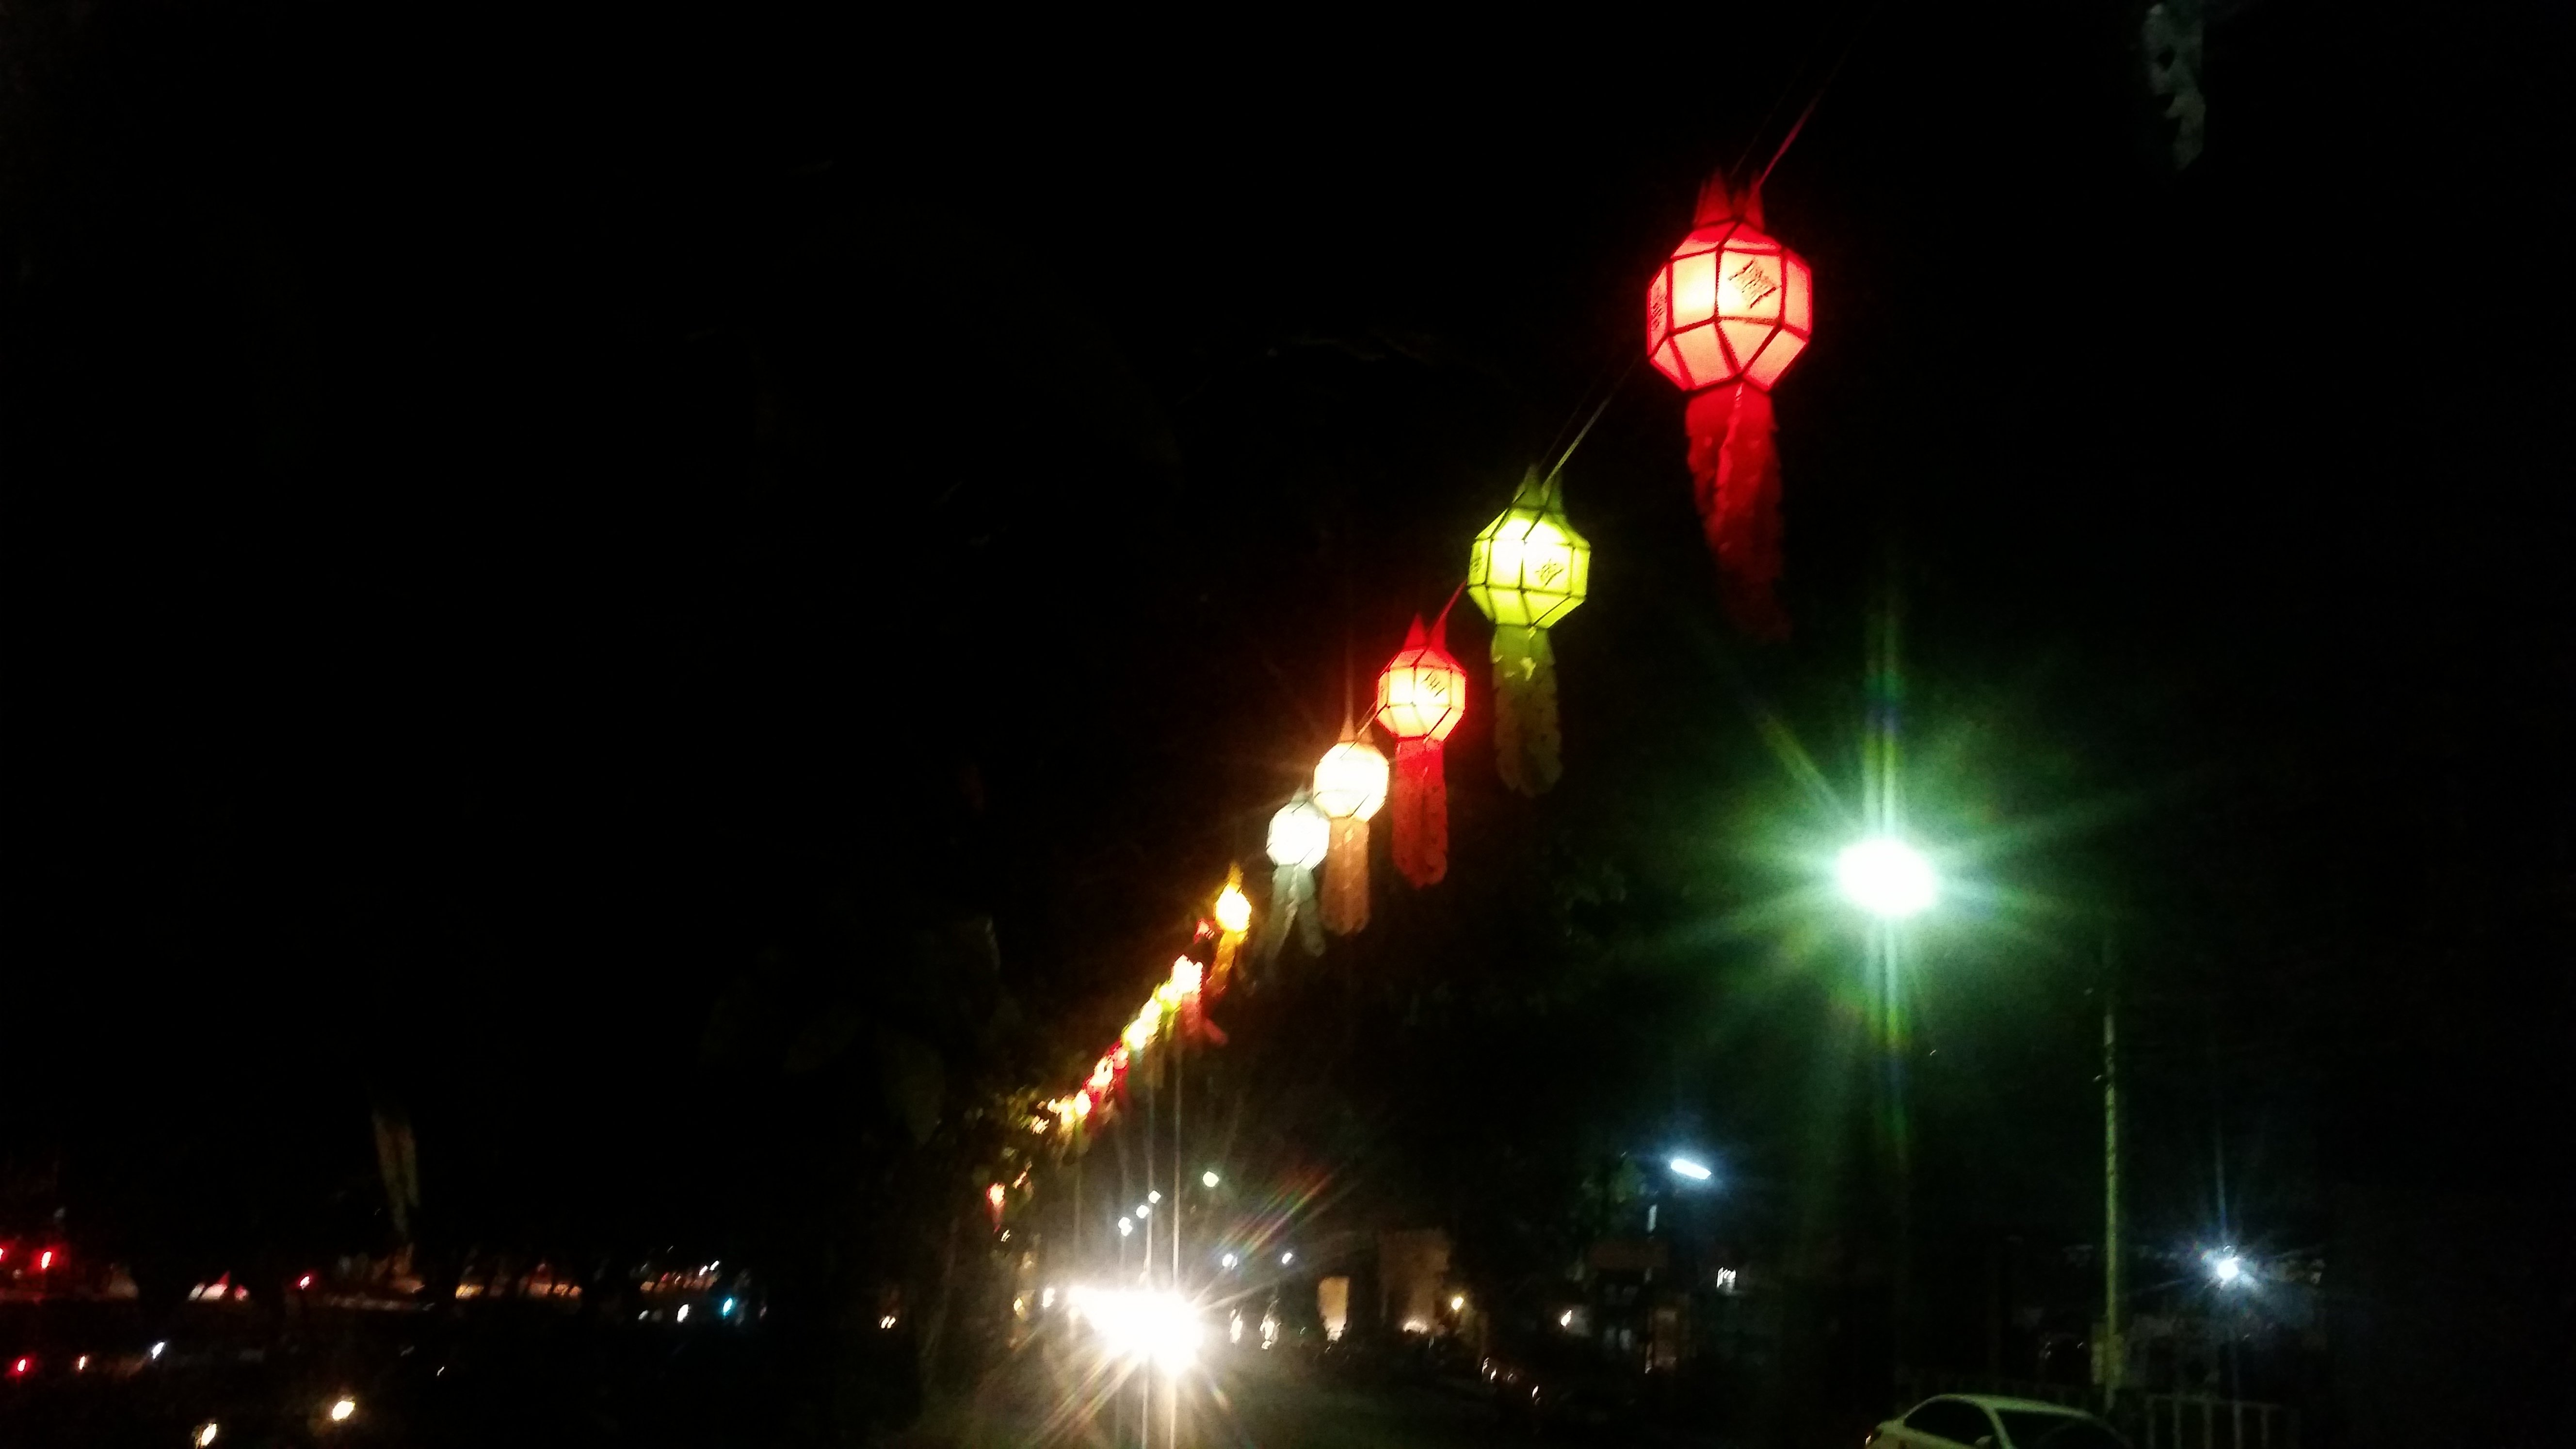 Paper lanterns line the moat during the festival.